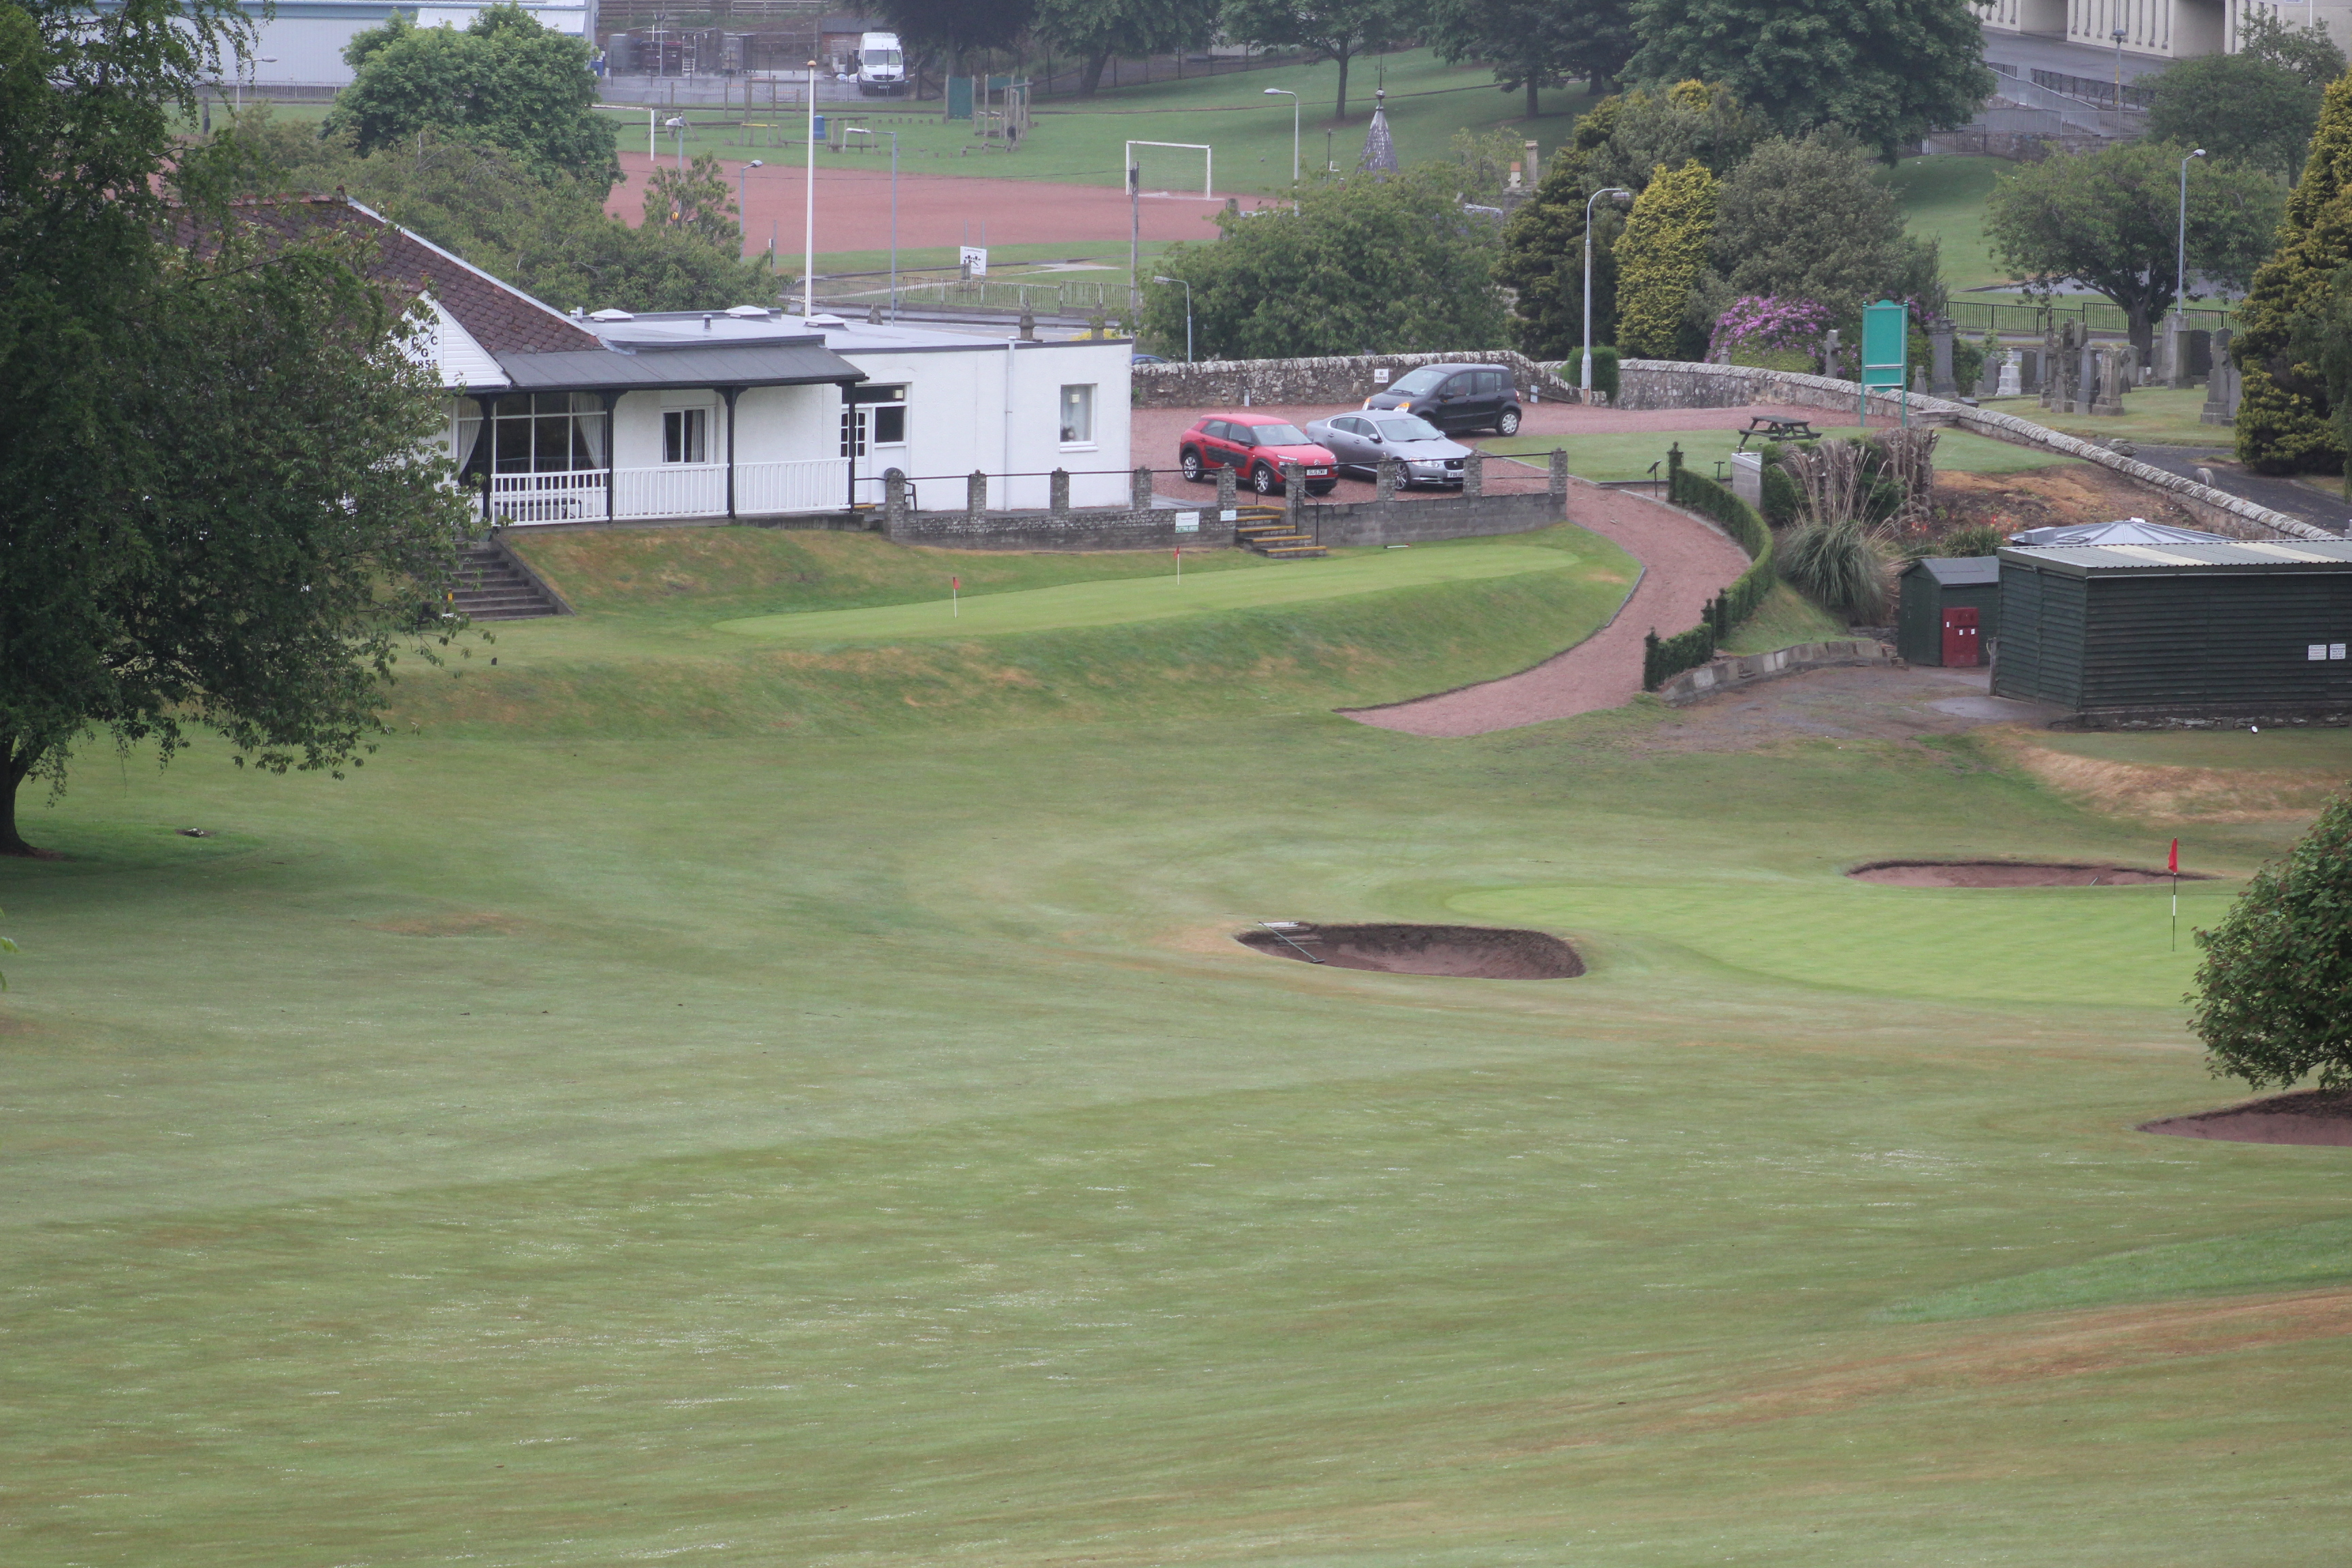 Overview of golf course named Cupar Golf Club